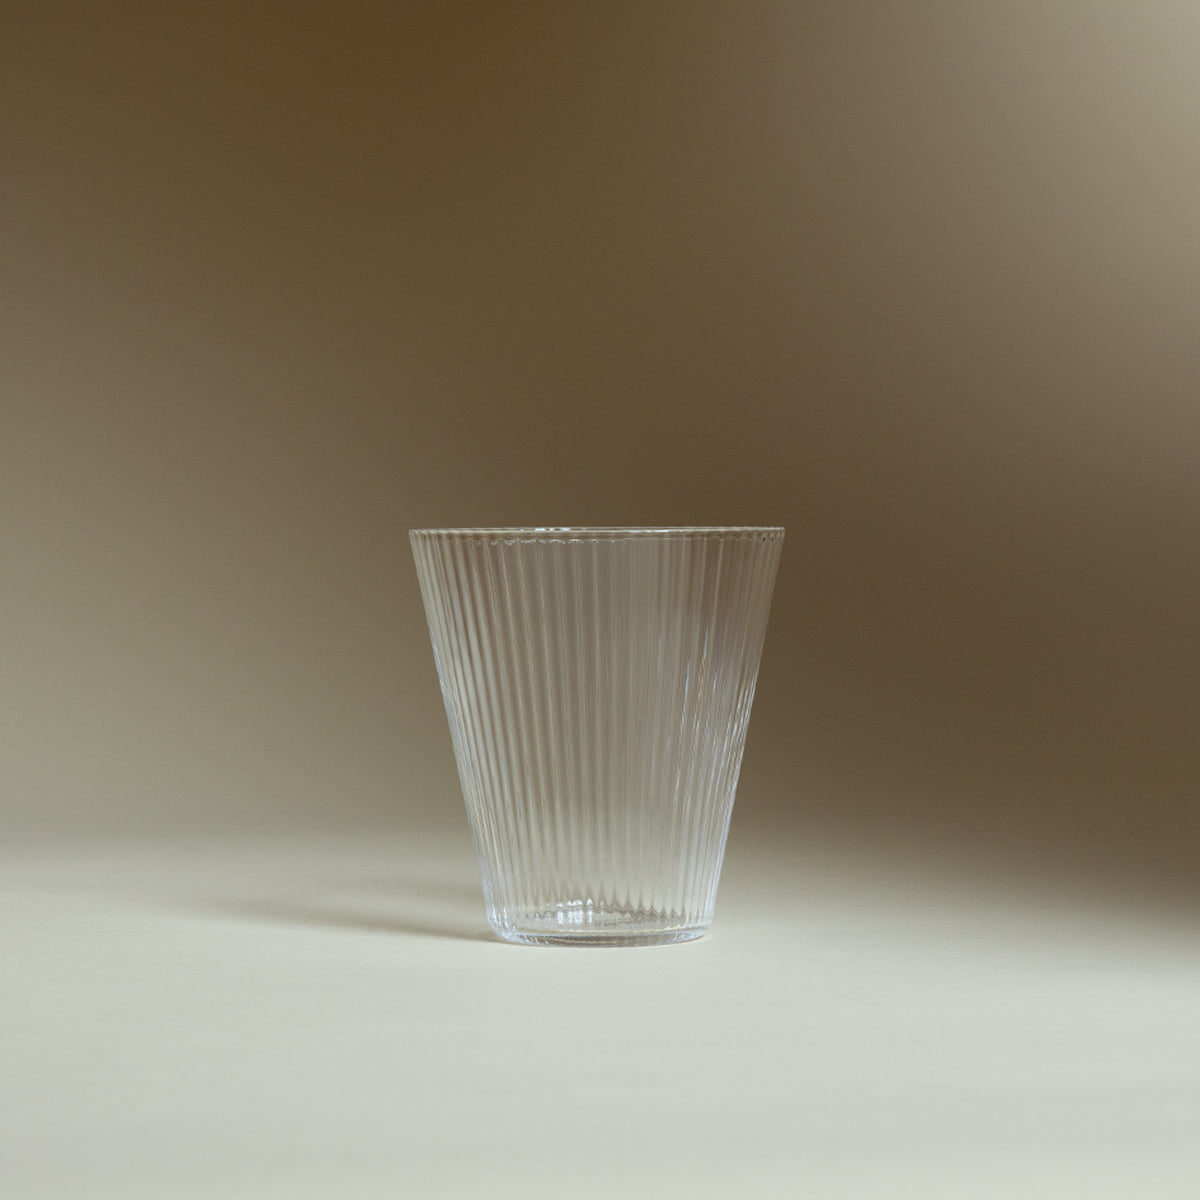 Japanese Drinking Glass